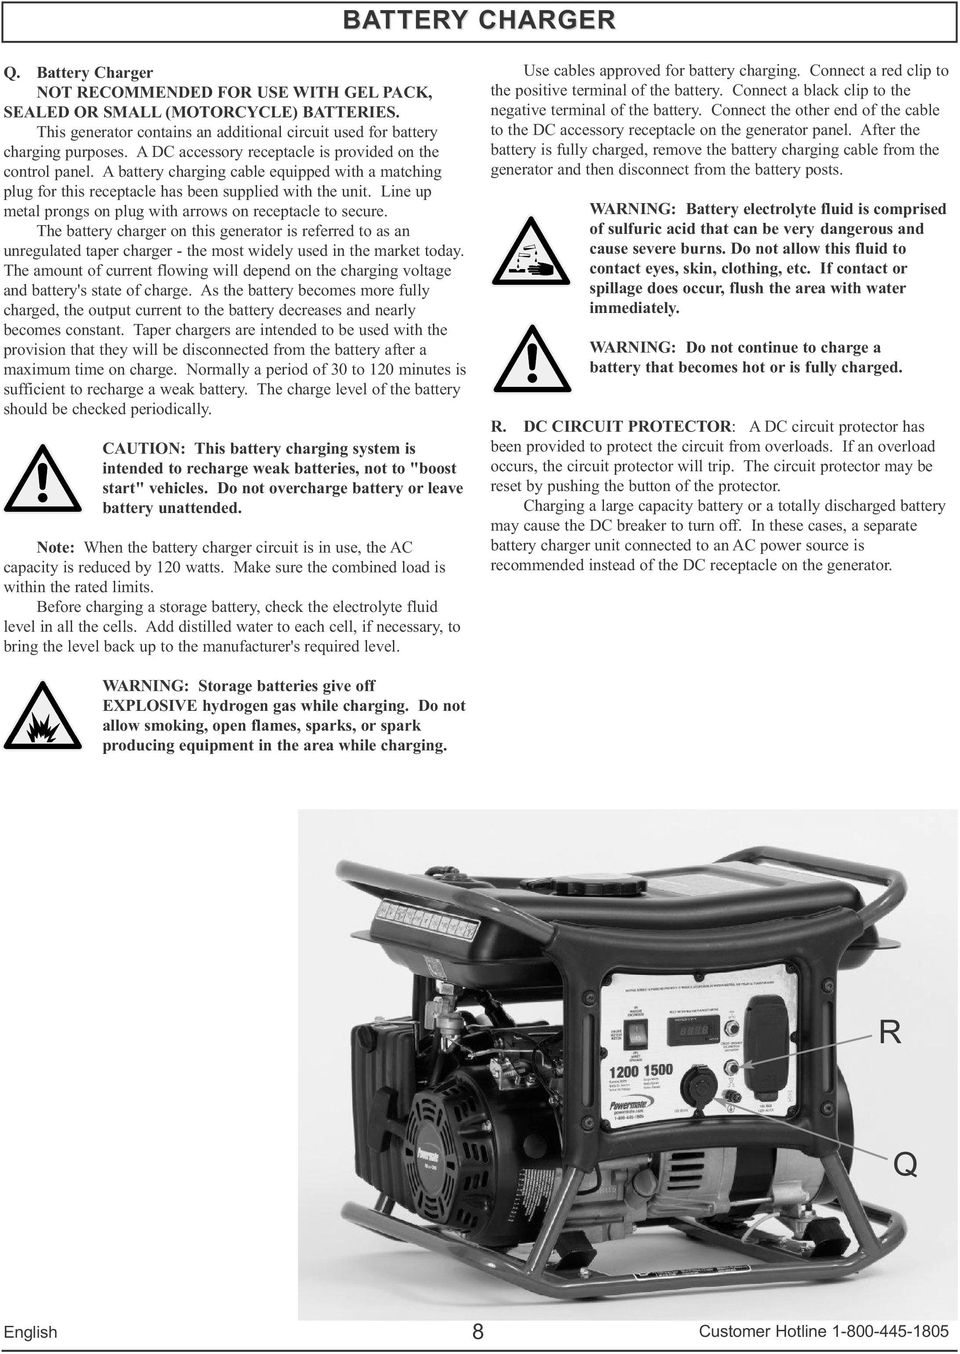 Line up metal prongs on plug with arrows on receptacle to secure. The battery charger on this generator is referred to as an unregulated taper charger - the most widely used in the market today.